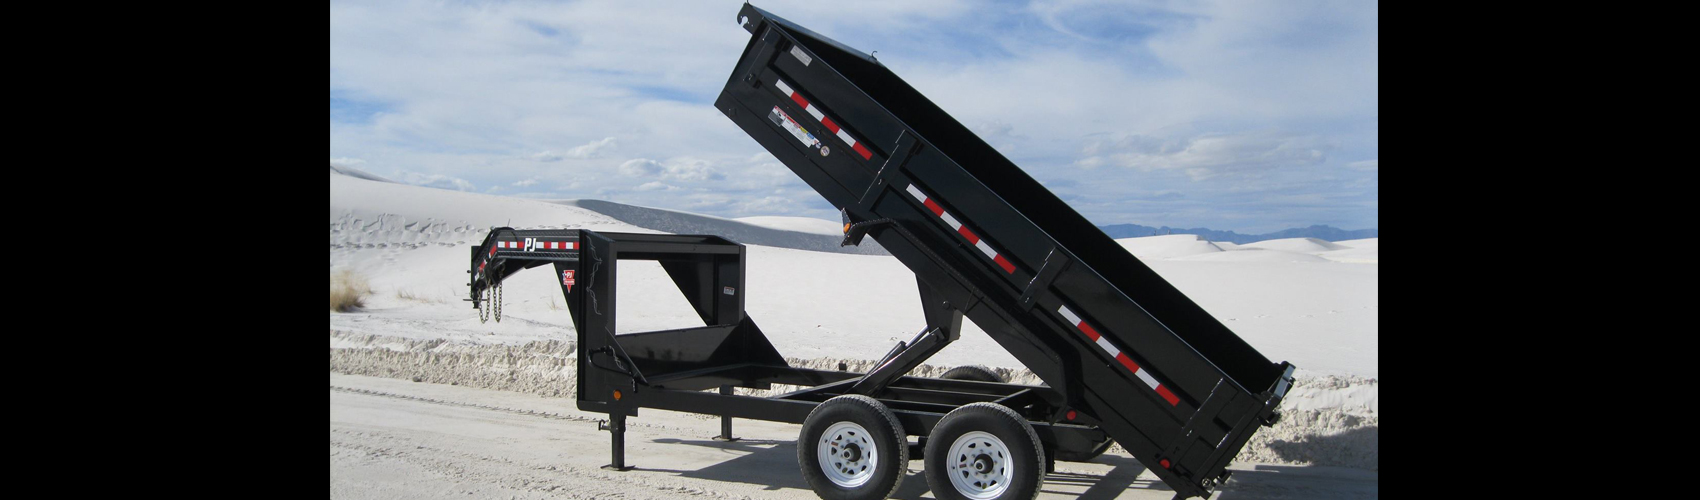 Home | Cargo Trailers for Sale | Cargo Trailer Sales in PA